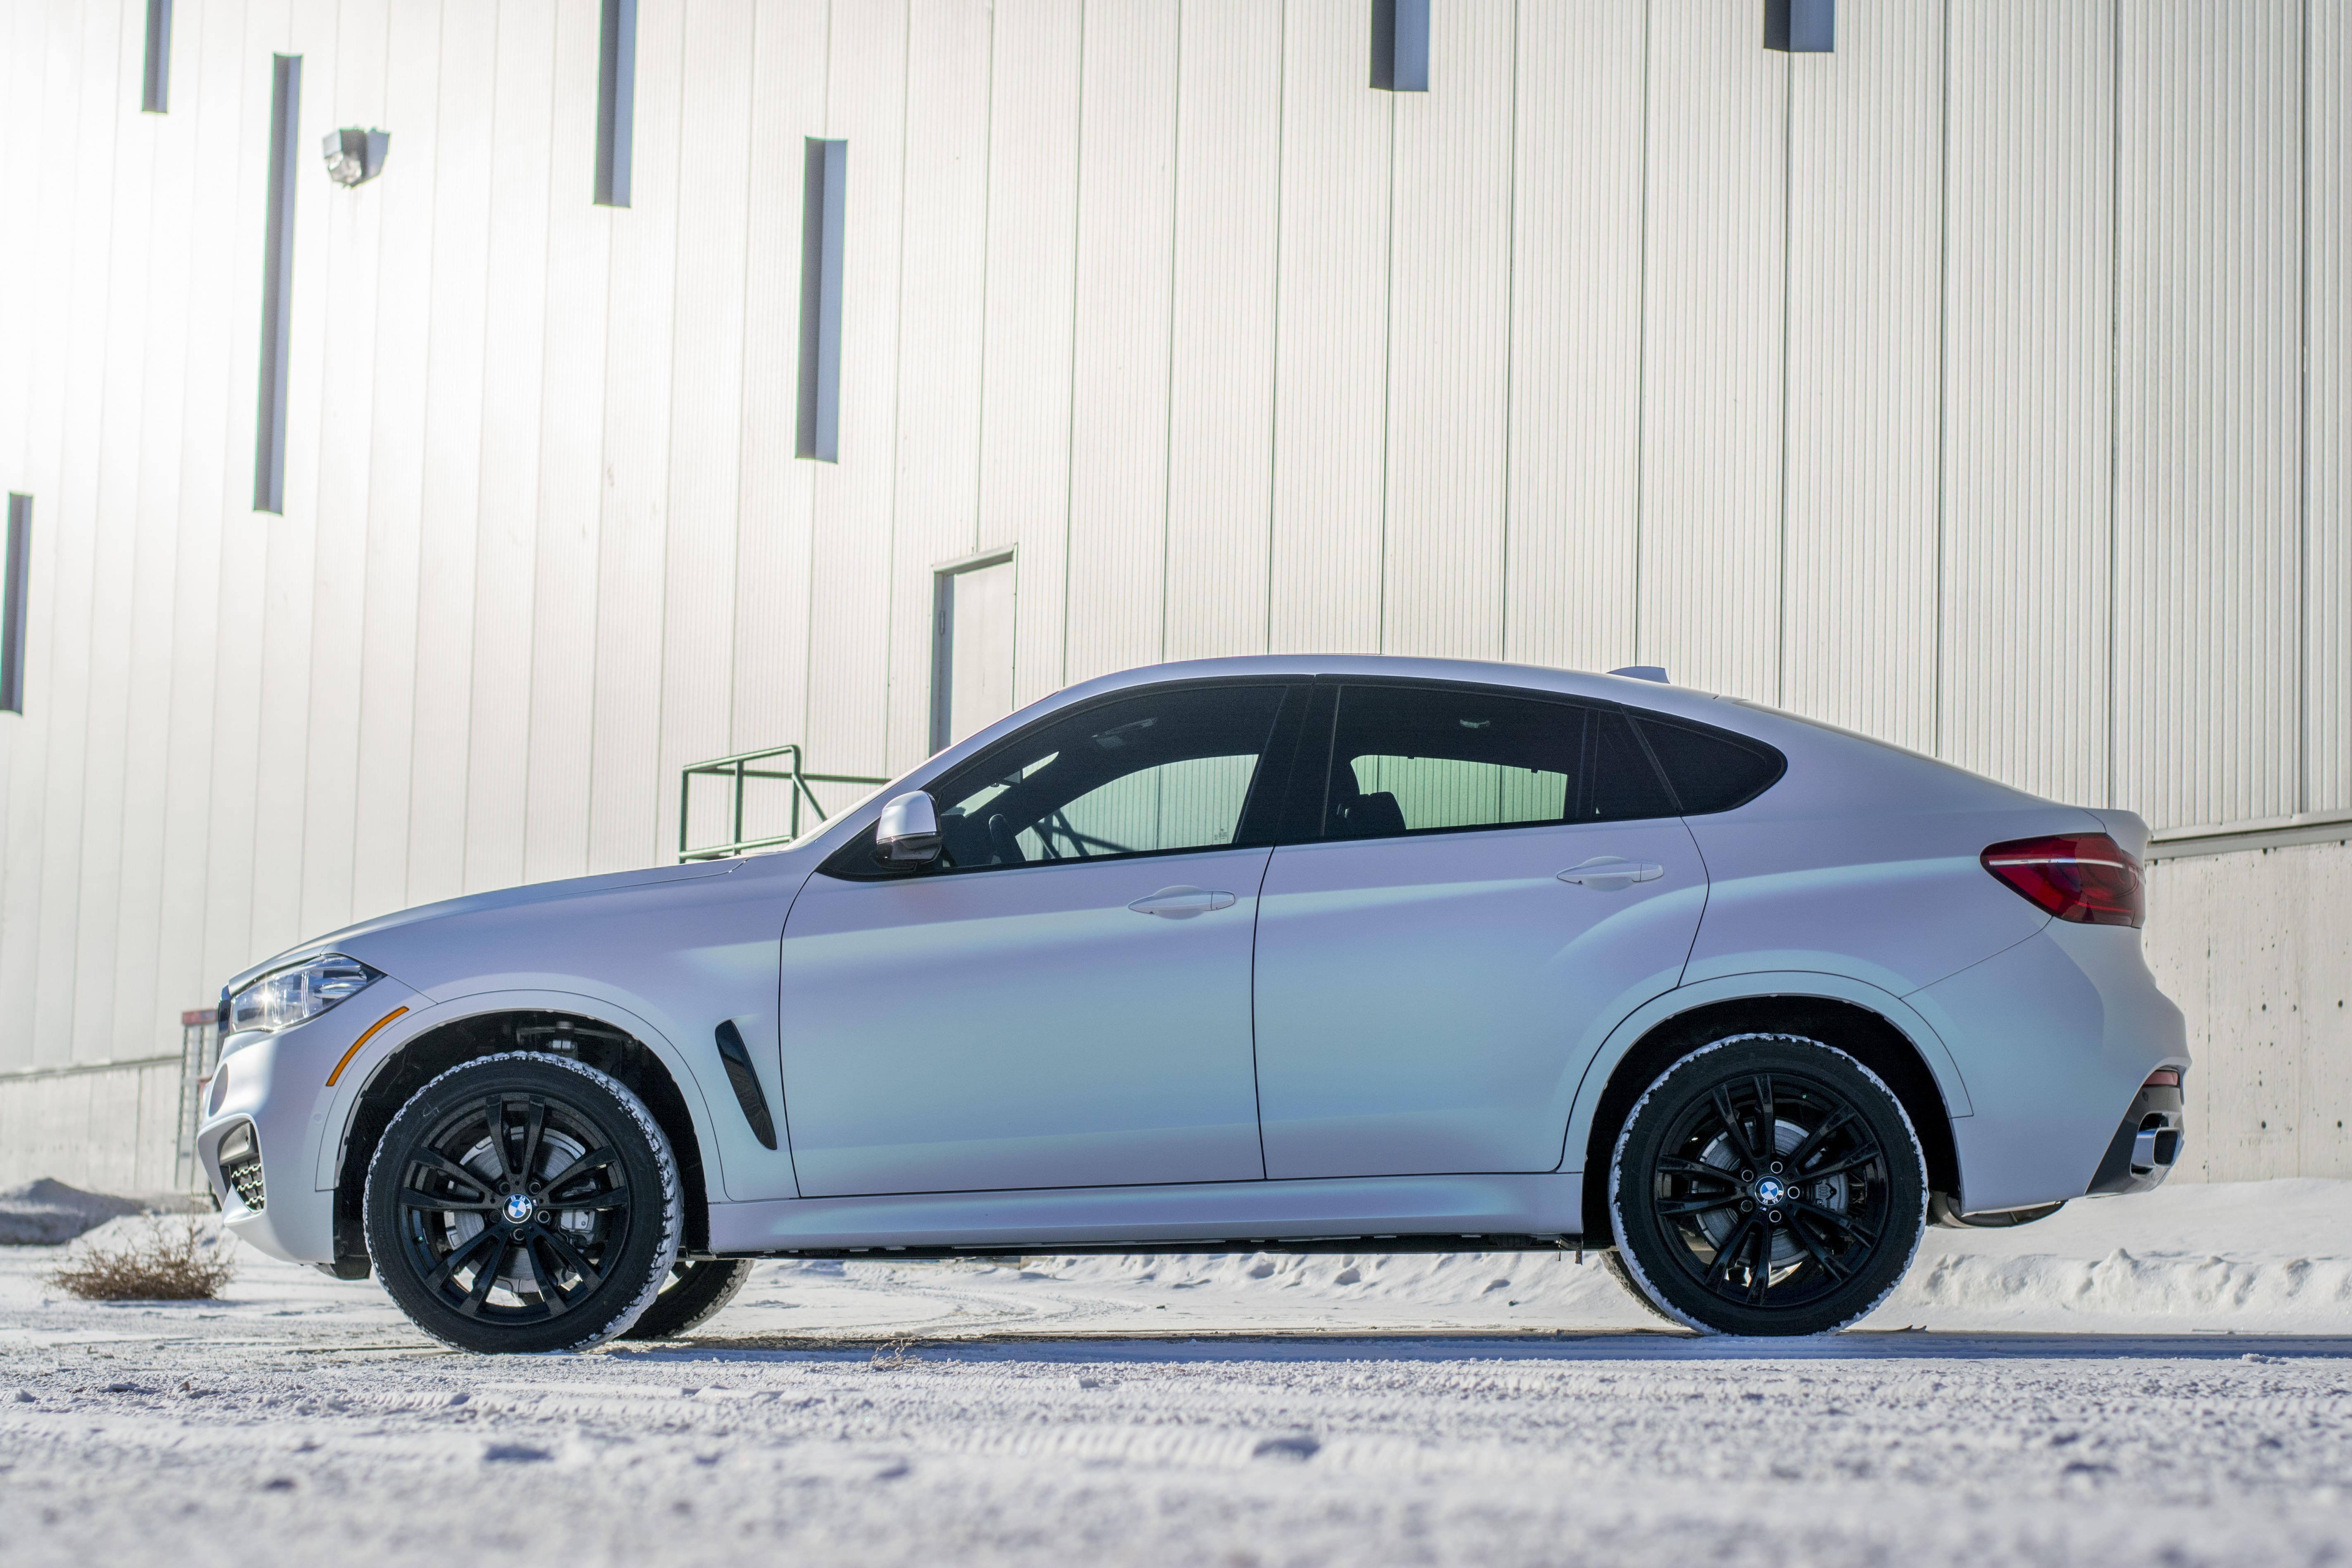 BMW X8 wrapped in KPMF Matte Aurora Pearl from side.